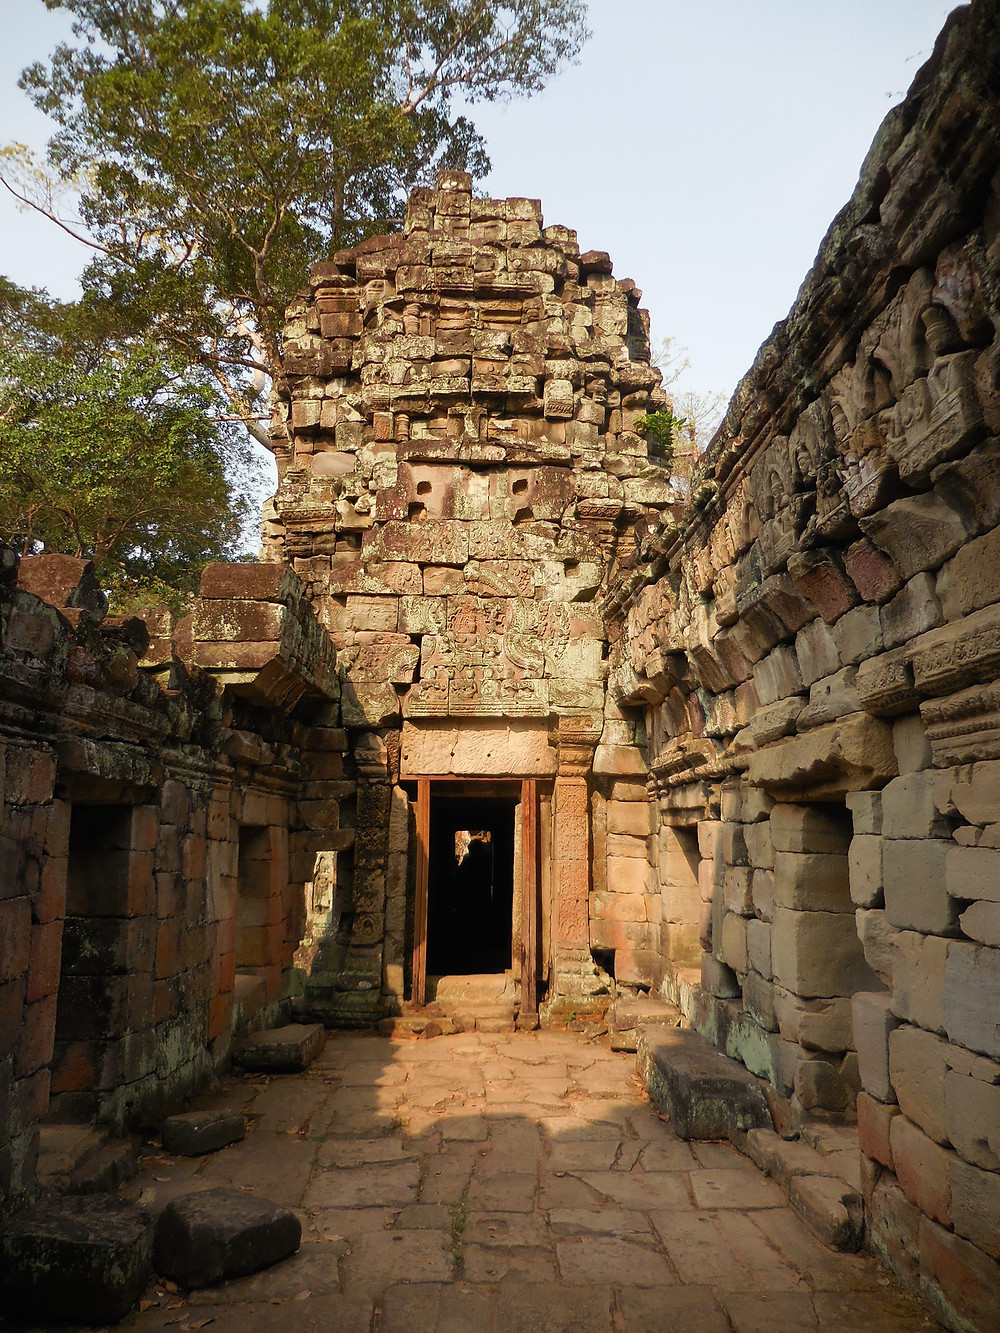 Inside the temple of Preah Khan in the early morning light